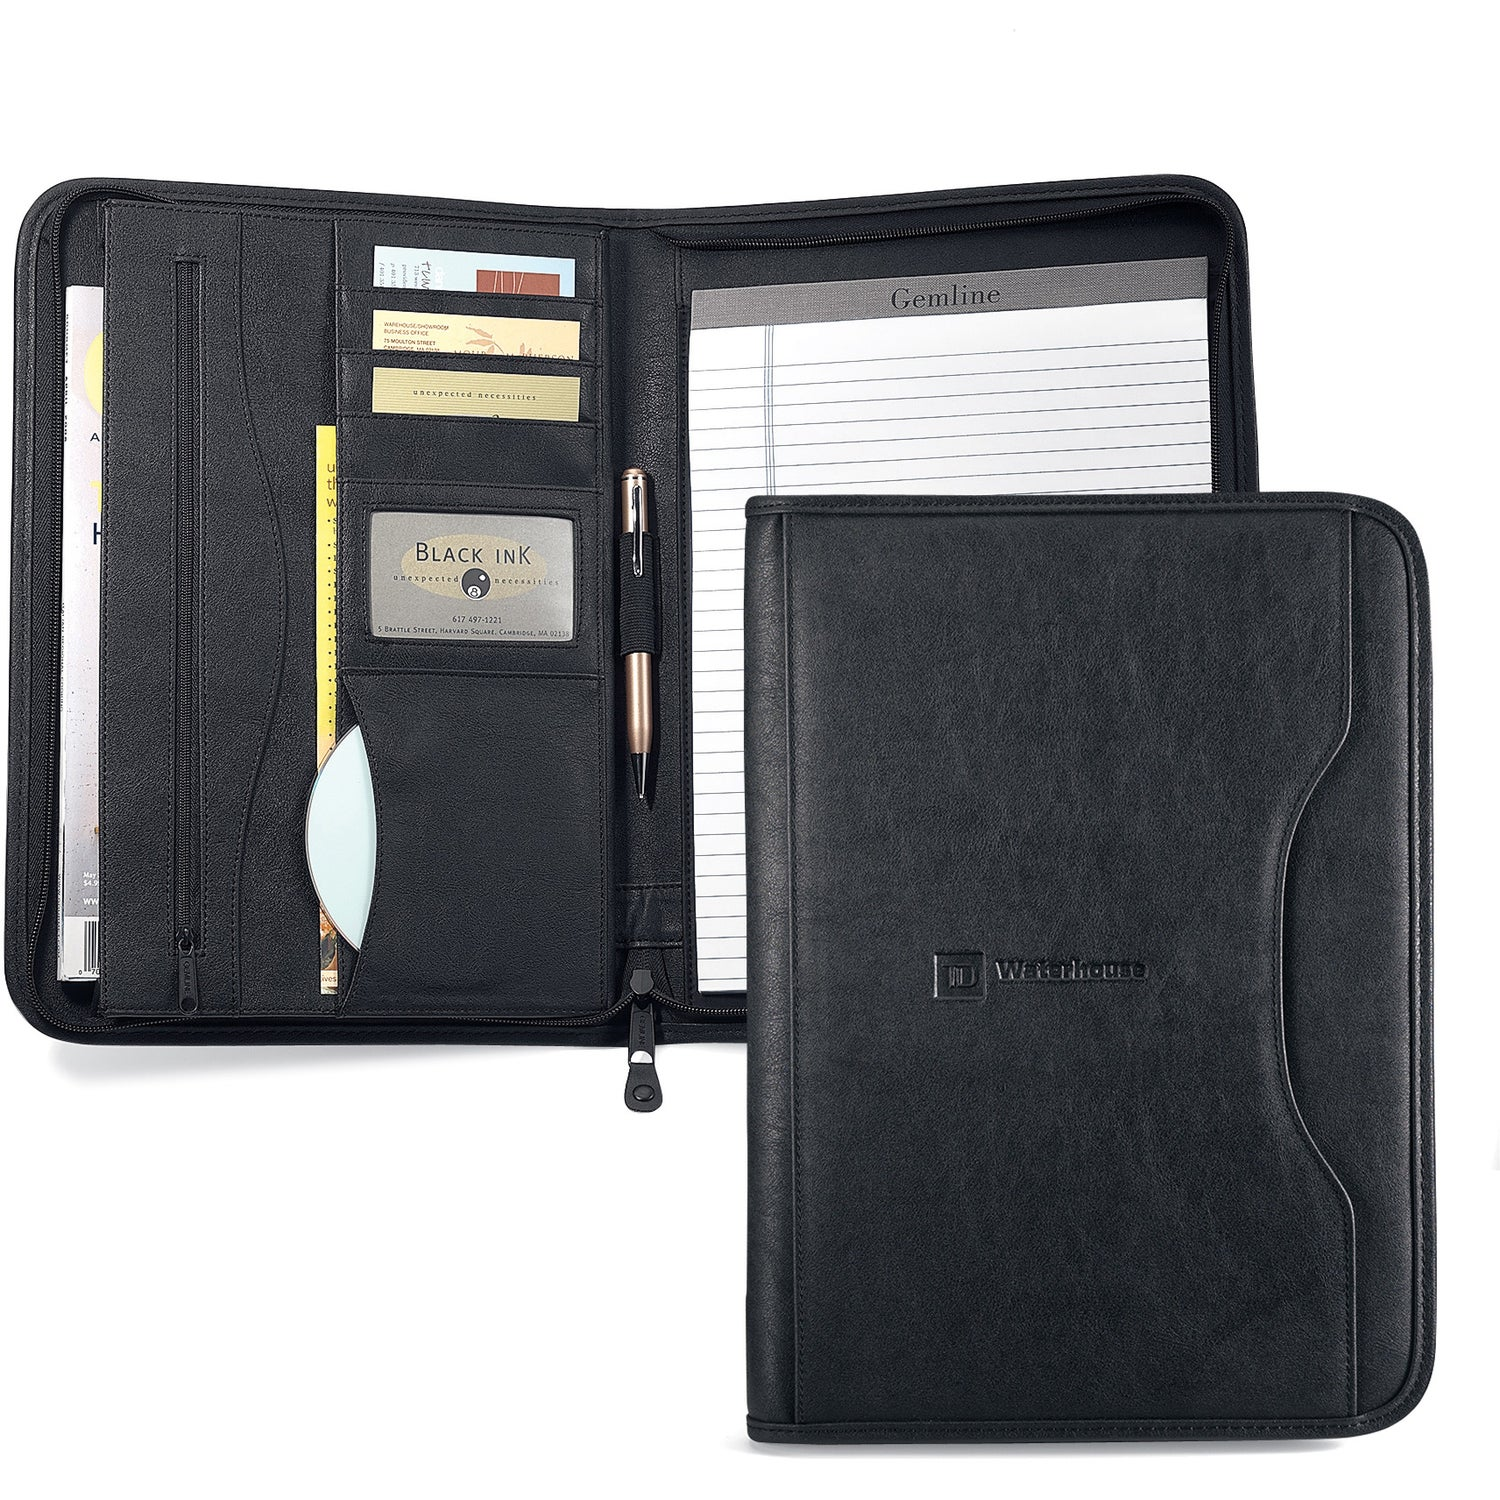 Custom Padfolios Personalized Leather Padfolios Qlp